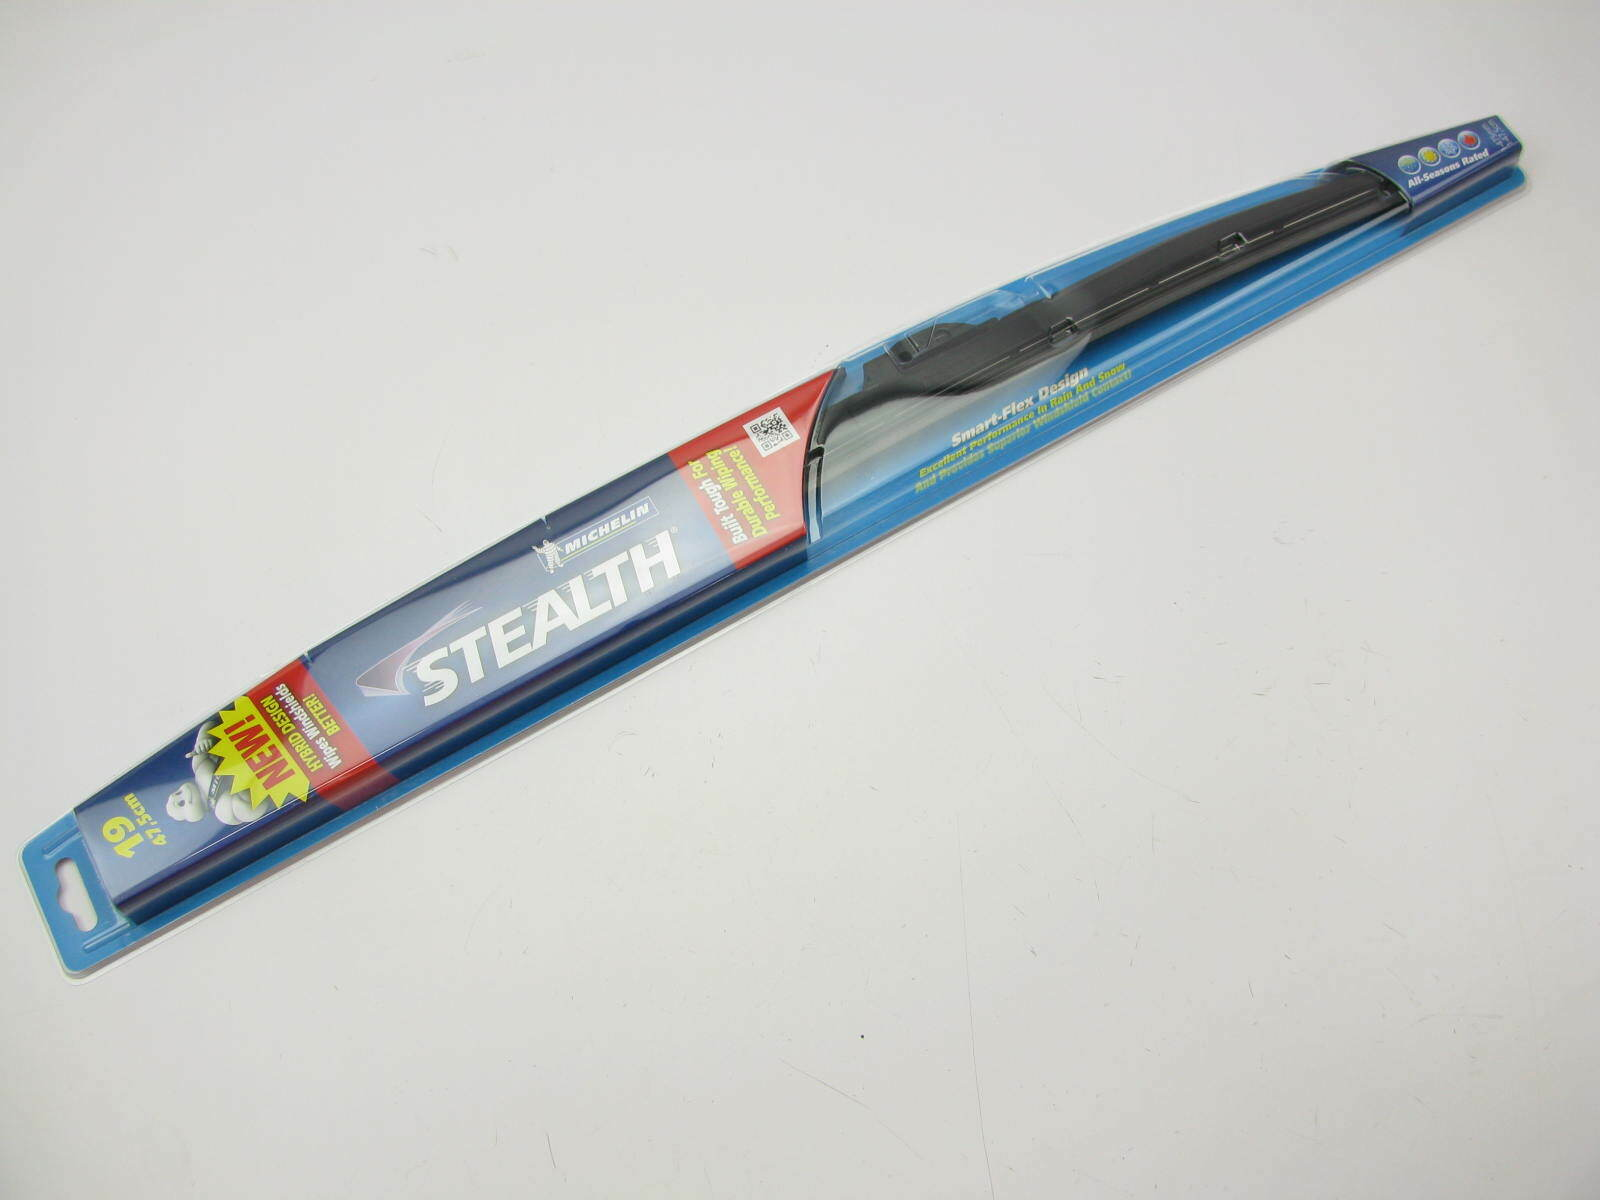 17 Michelin 8017 Stealth Hybrid Wiper Blade Pack of 1